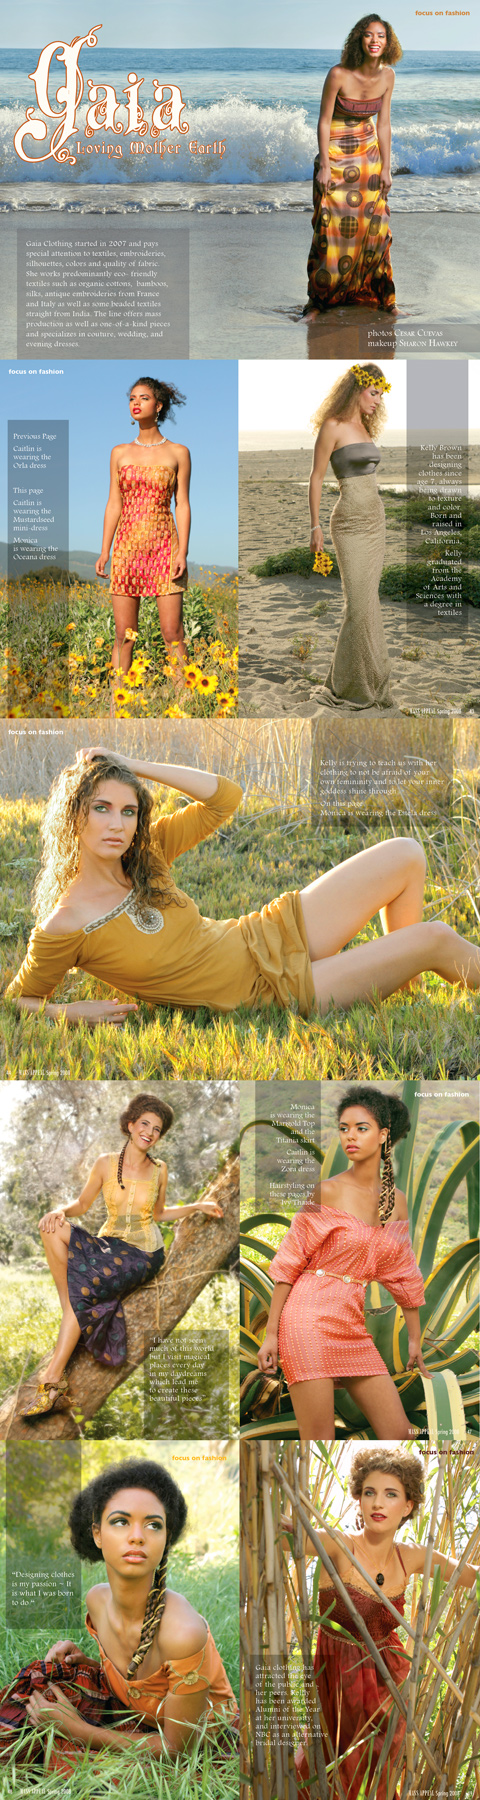 Malibu ~ special thanks to Ari, Bekah, and Homer for helping out May 27, 2008 Cesar Cuevas  Gaia Designs for Mass Appeal eZine Spring 08 issue